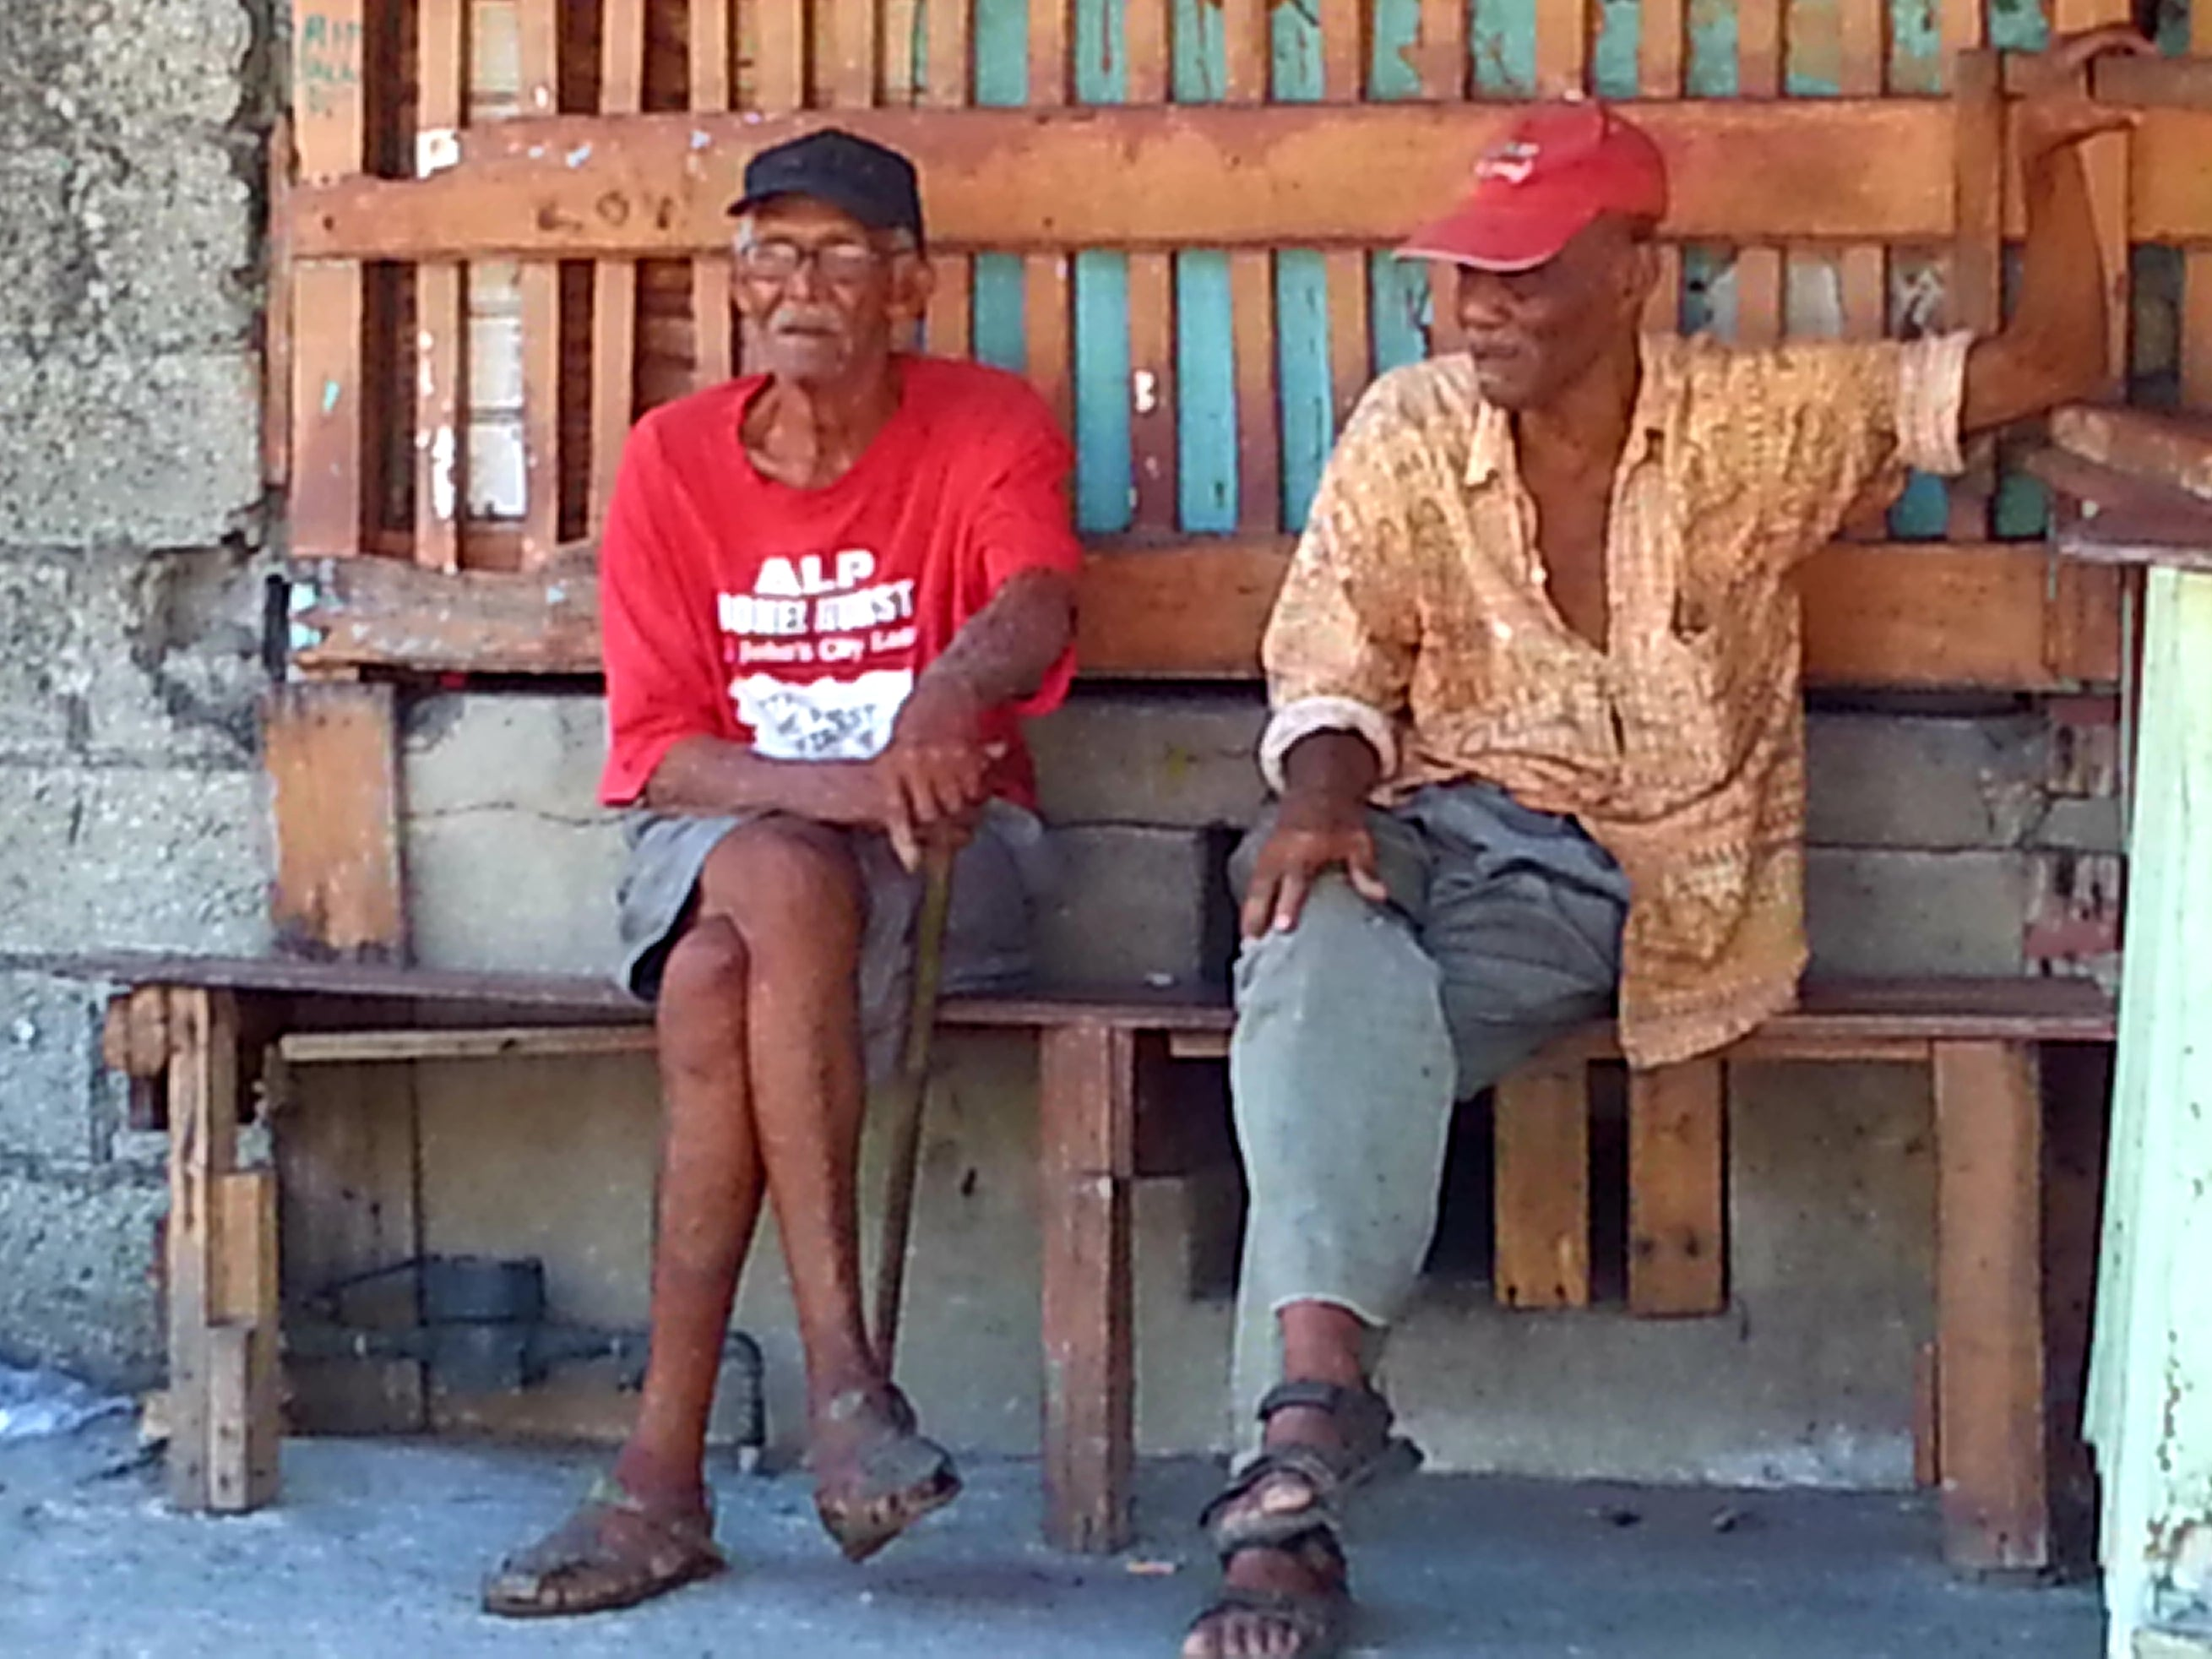 Australian Cricket Tours - Two West Indian Gents Lazing Away The Day Outside A Rum Shack In Jamaica